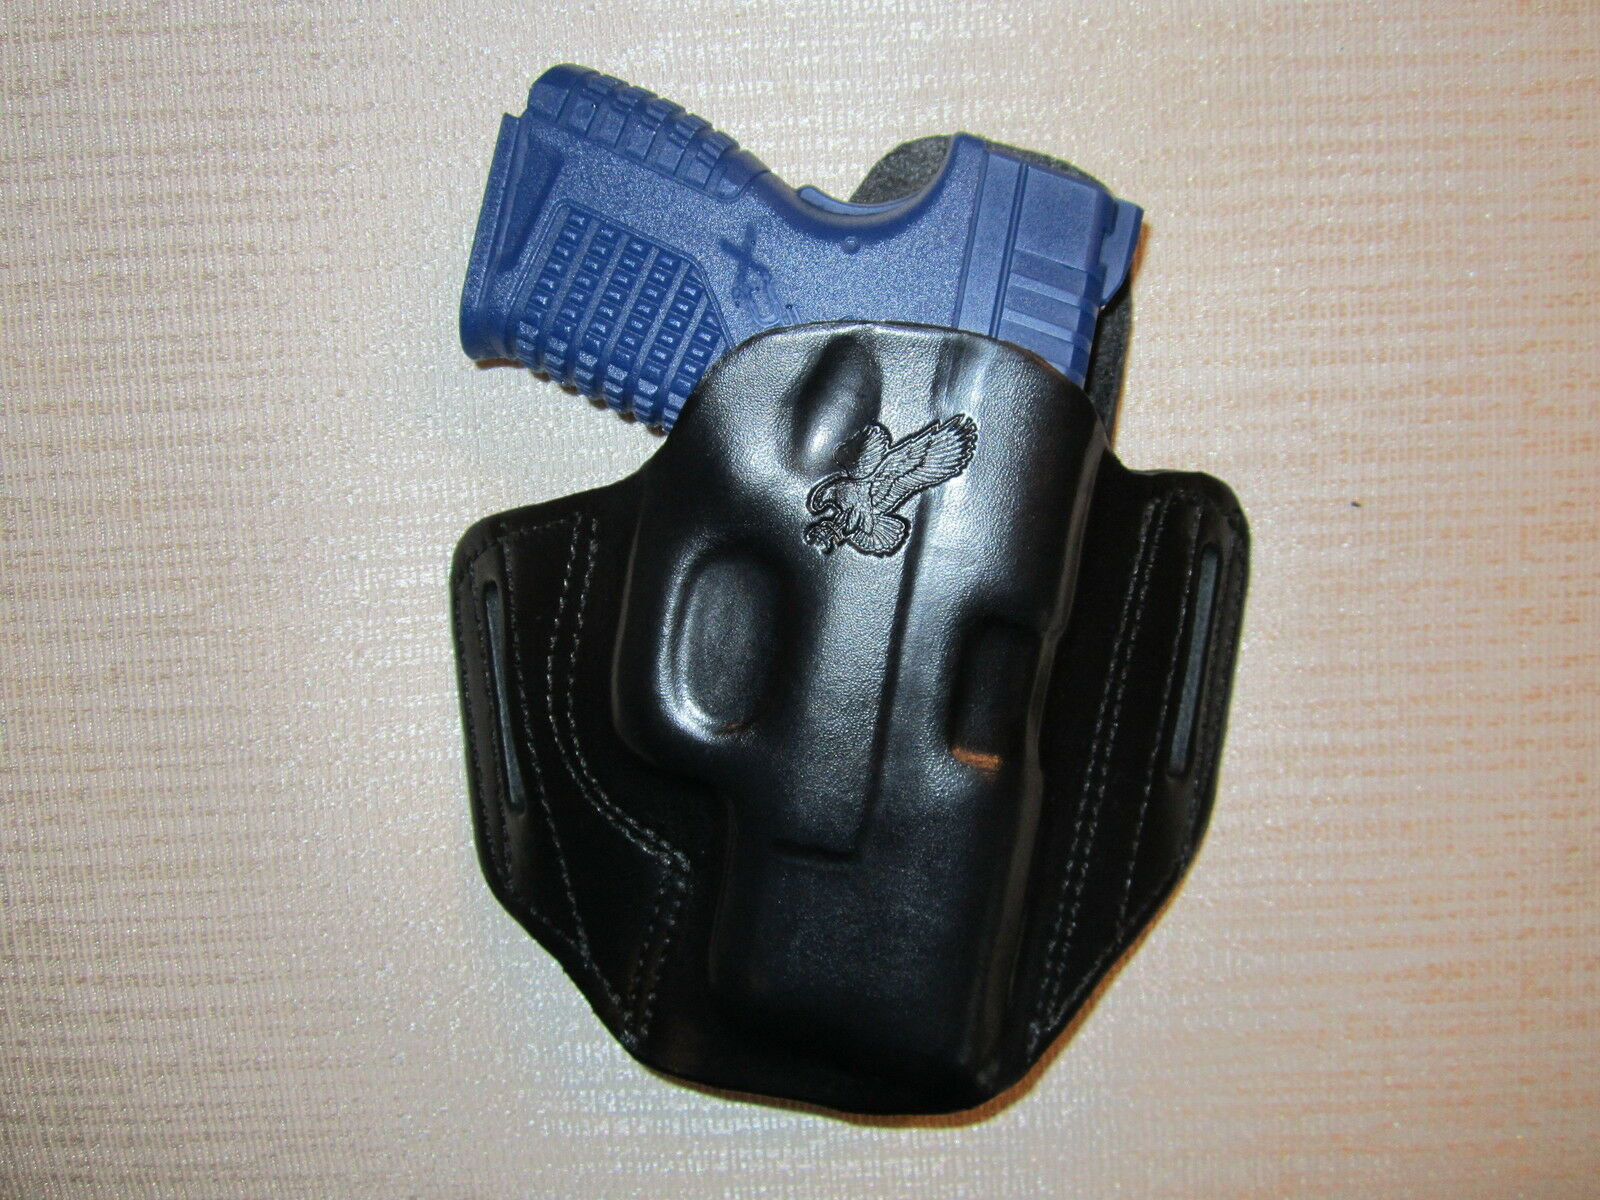 XDS 3.3,  9 MM & XDS 45 CAL.  formed Leder pancake owb belt holster